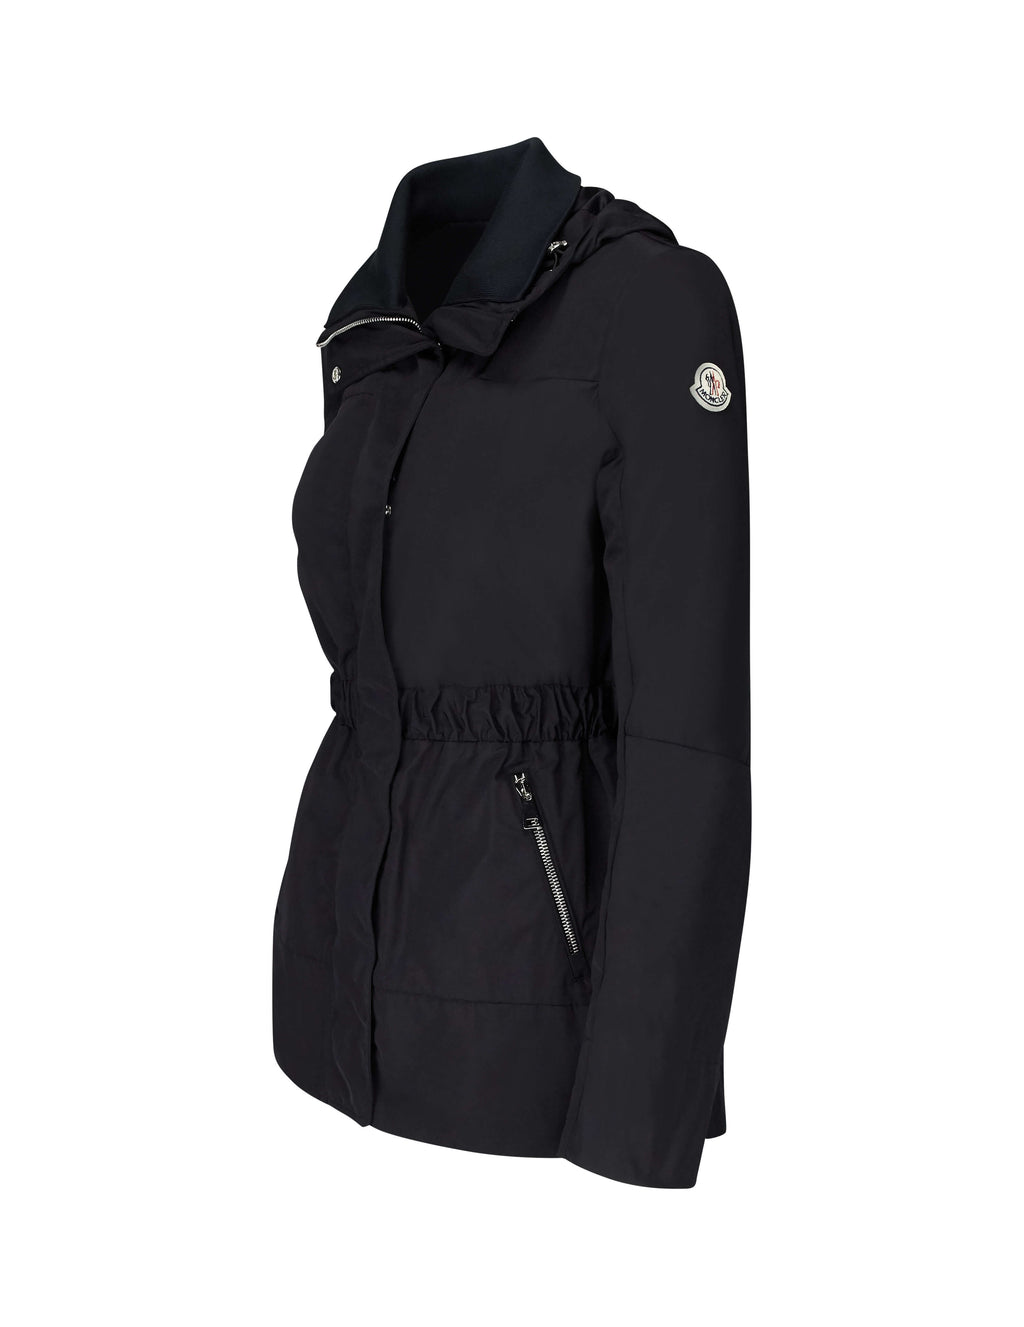 Moncler Women's Giulio Fashion Black Disthene Jacket 460040554543999